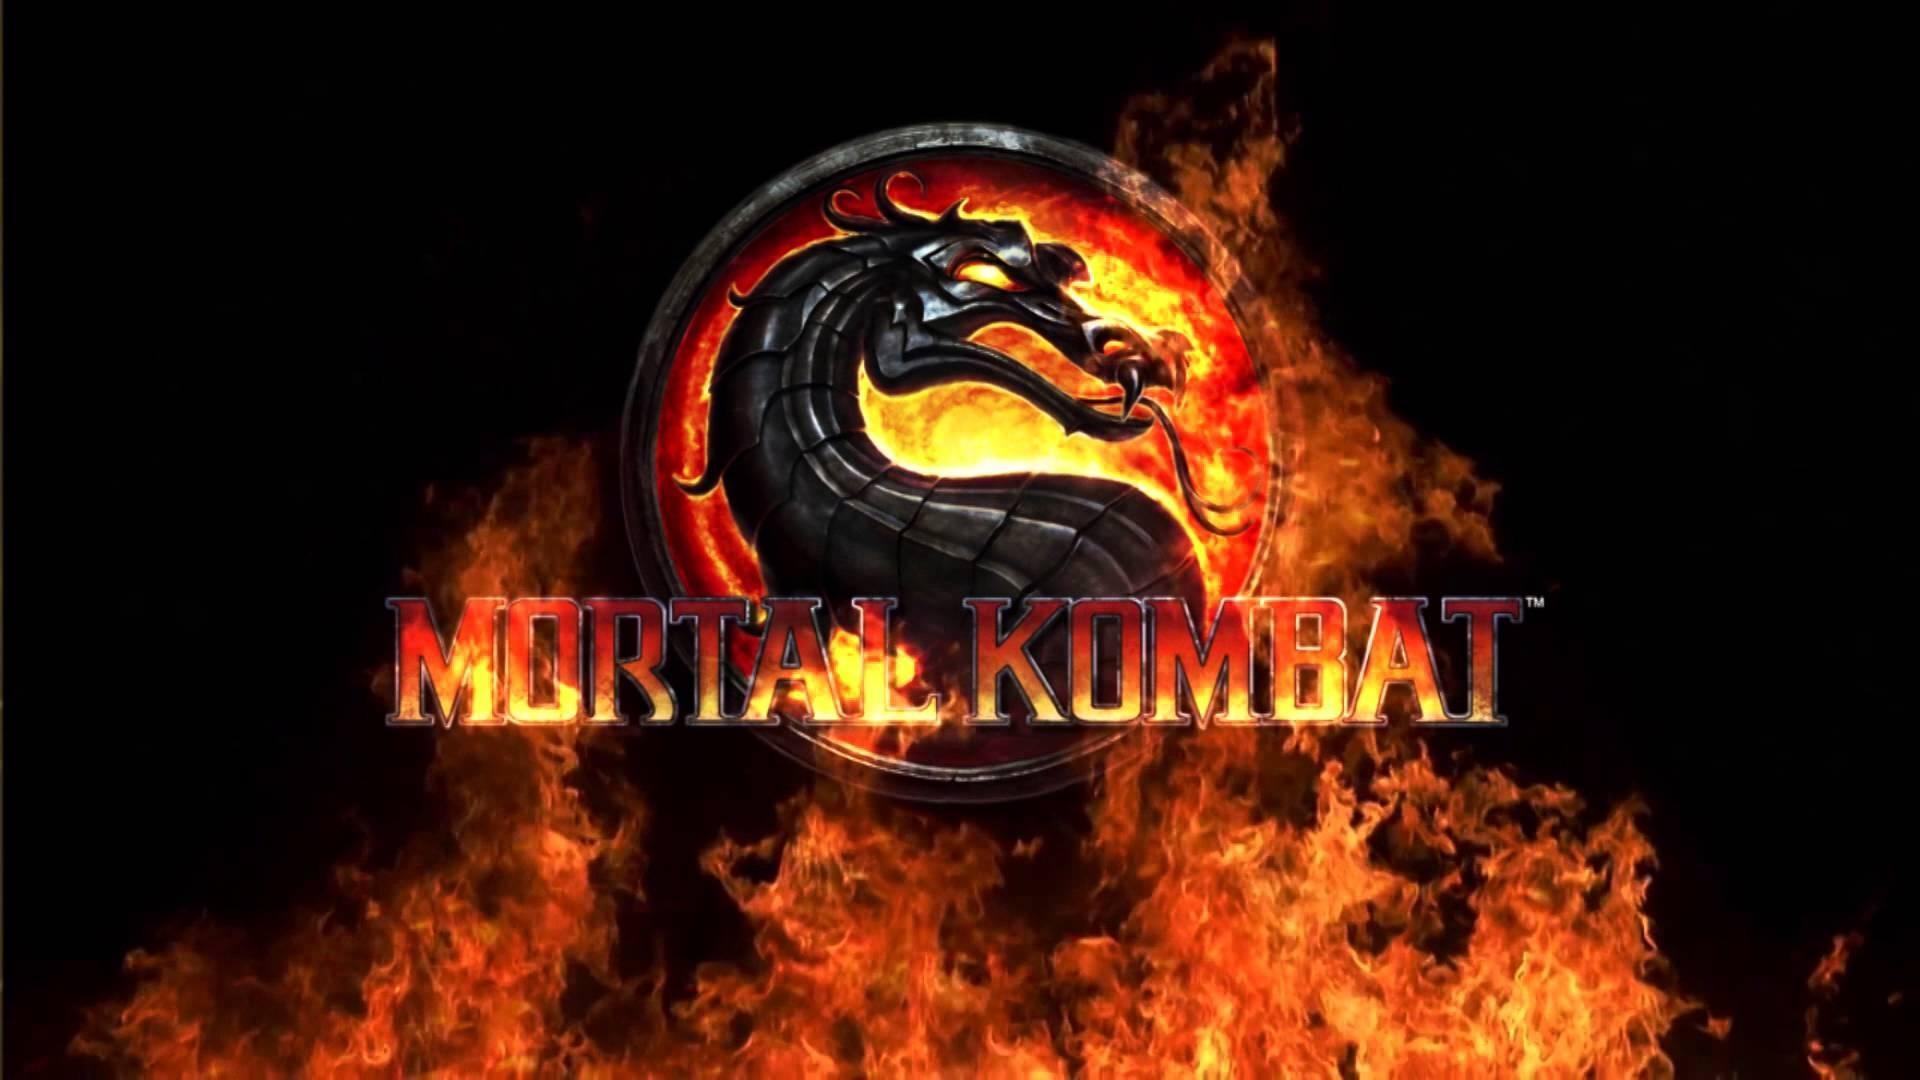 1920x1080 Mortal Kombat Logo Wallpaper 15 - 1680 X 1050 · Original